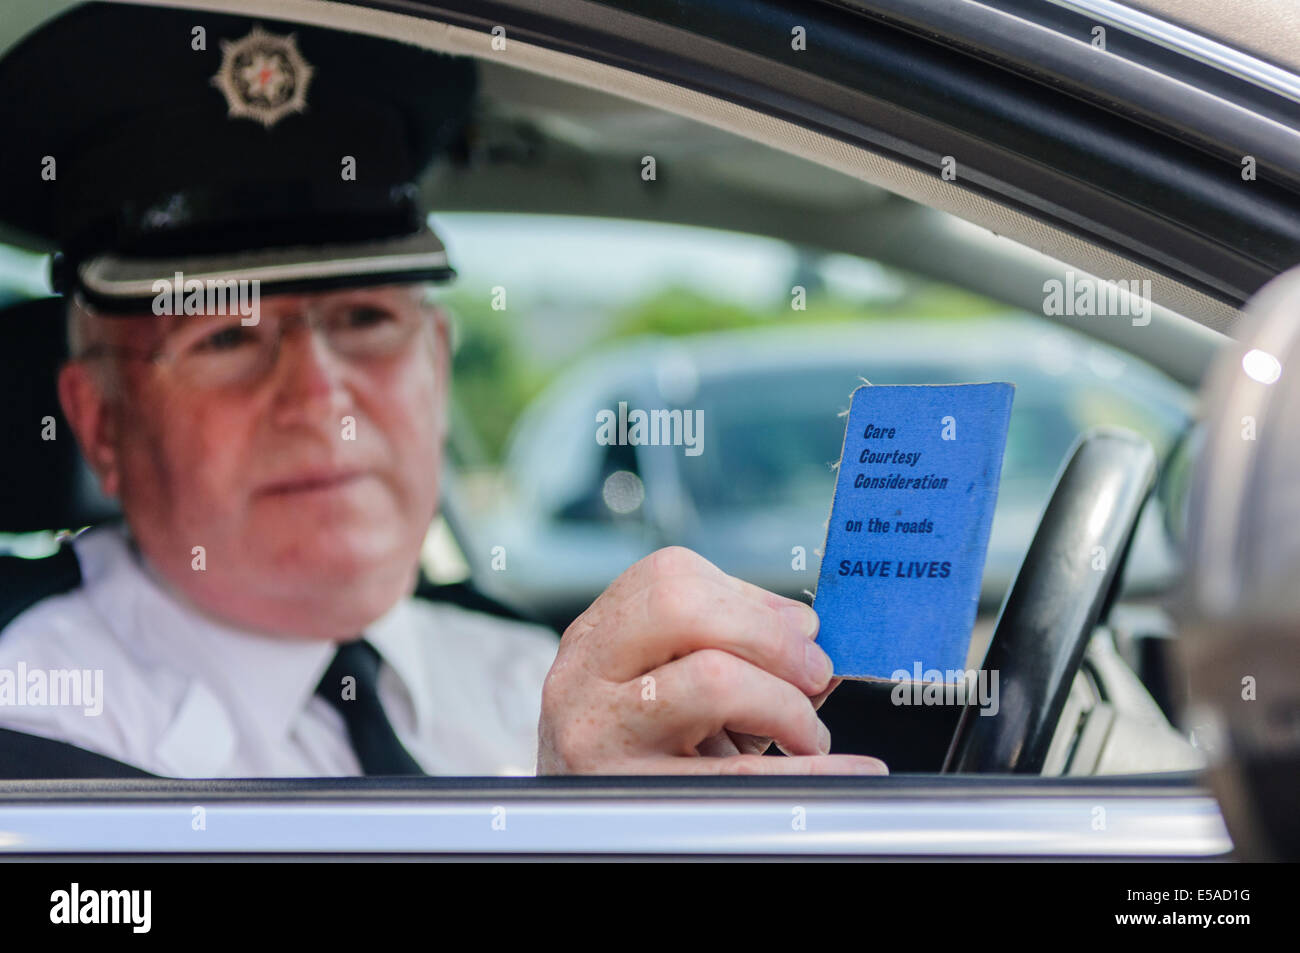 Lisburn, Northern Ireland. 25th July, 2014. - Superintendent Gerry Murray shows an old fashioned driving licence - Stock Image